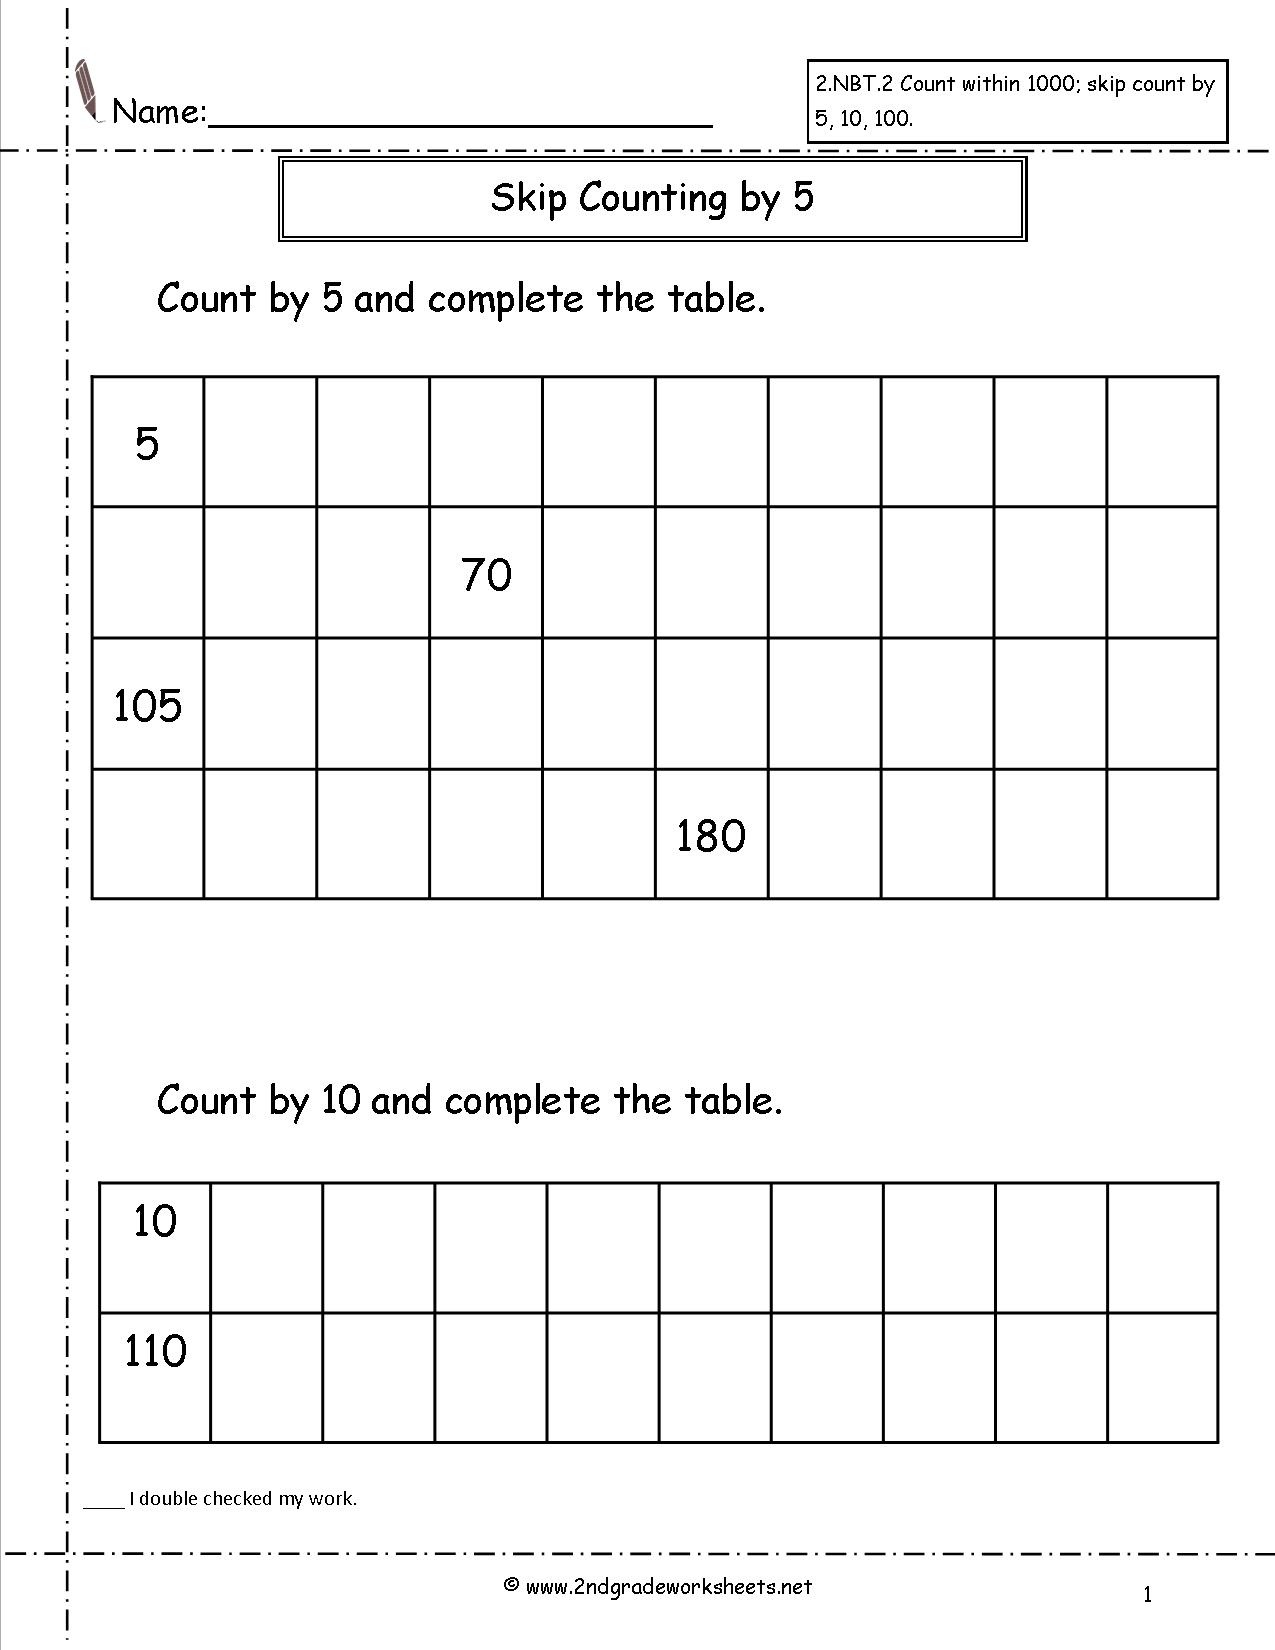 Free Printable Skip Counting Worksheets